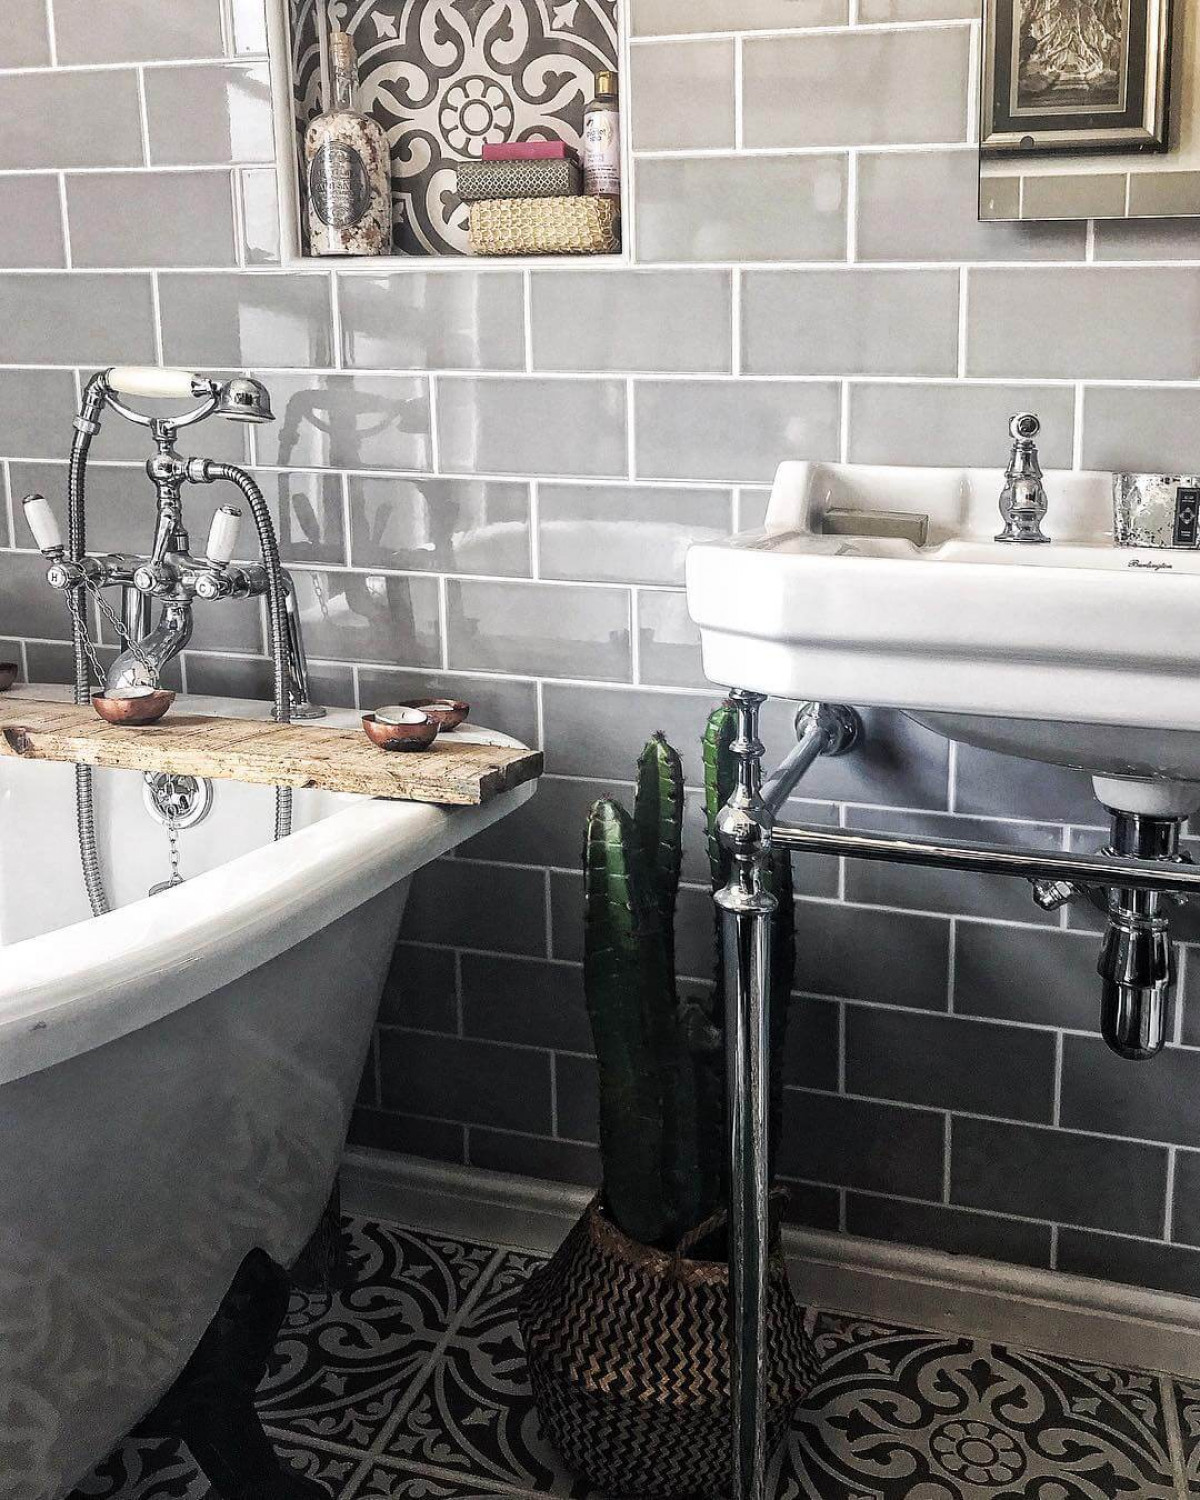 Metro Tile Guide Everything You Need To Know About Metro Tiles British Ceramic Tile